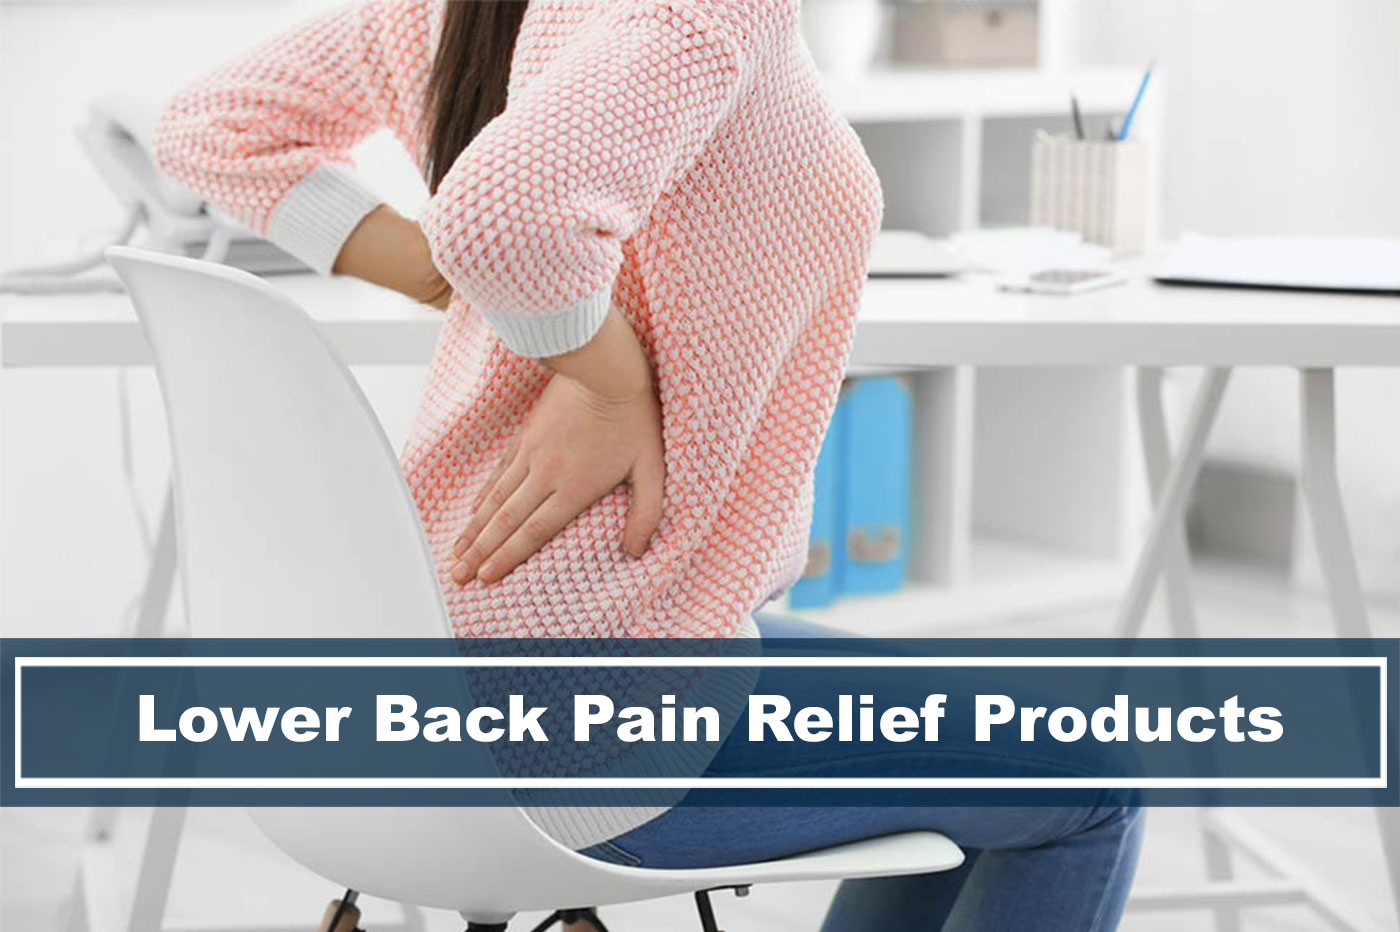 Ultimate Lower Back Pain Relief Products That Works